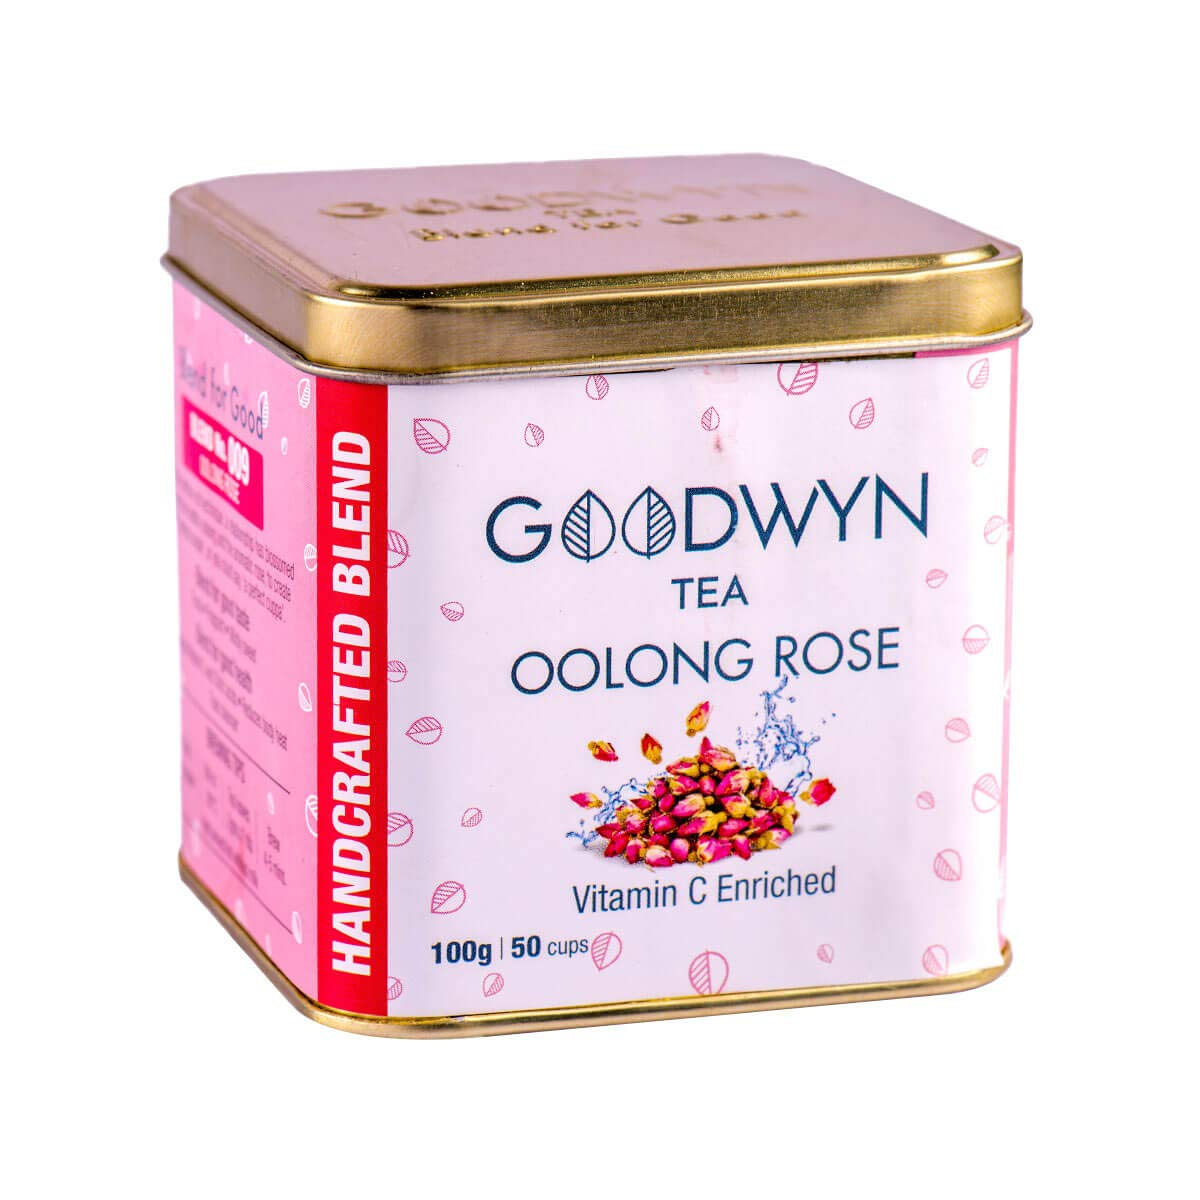 Goodwyn Oolong Rose Tea, Pure Oolong Tea with Rose Petals, 100 Grams (B00VX24PIM) Amazon Price History, Amazon Price Tracker